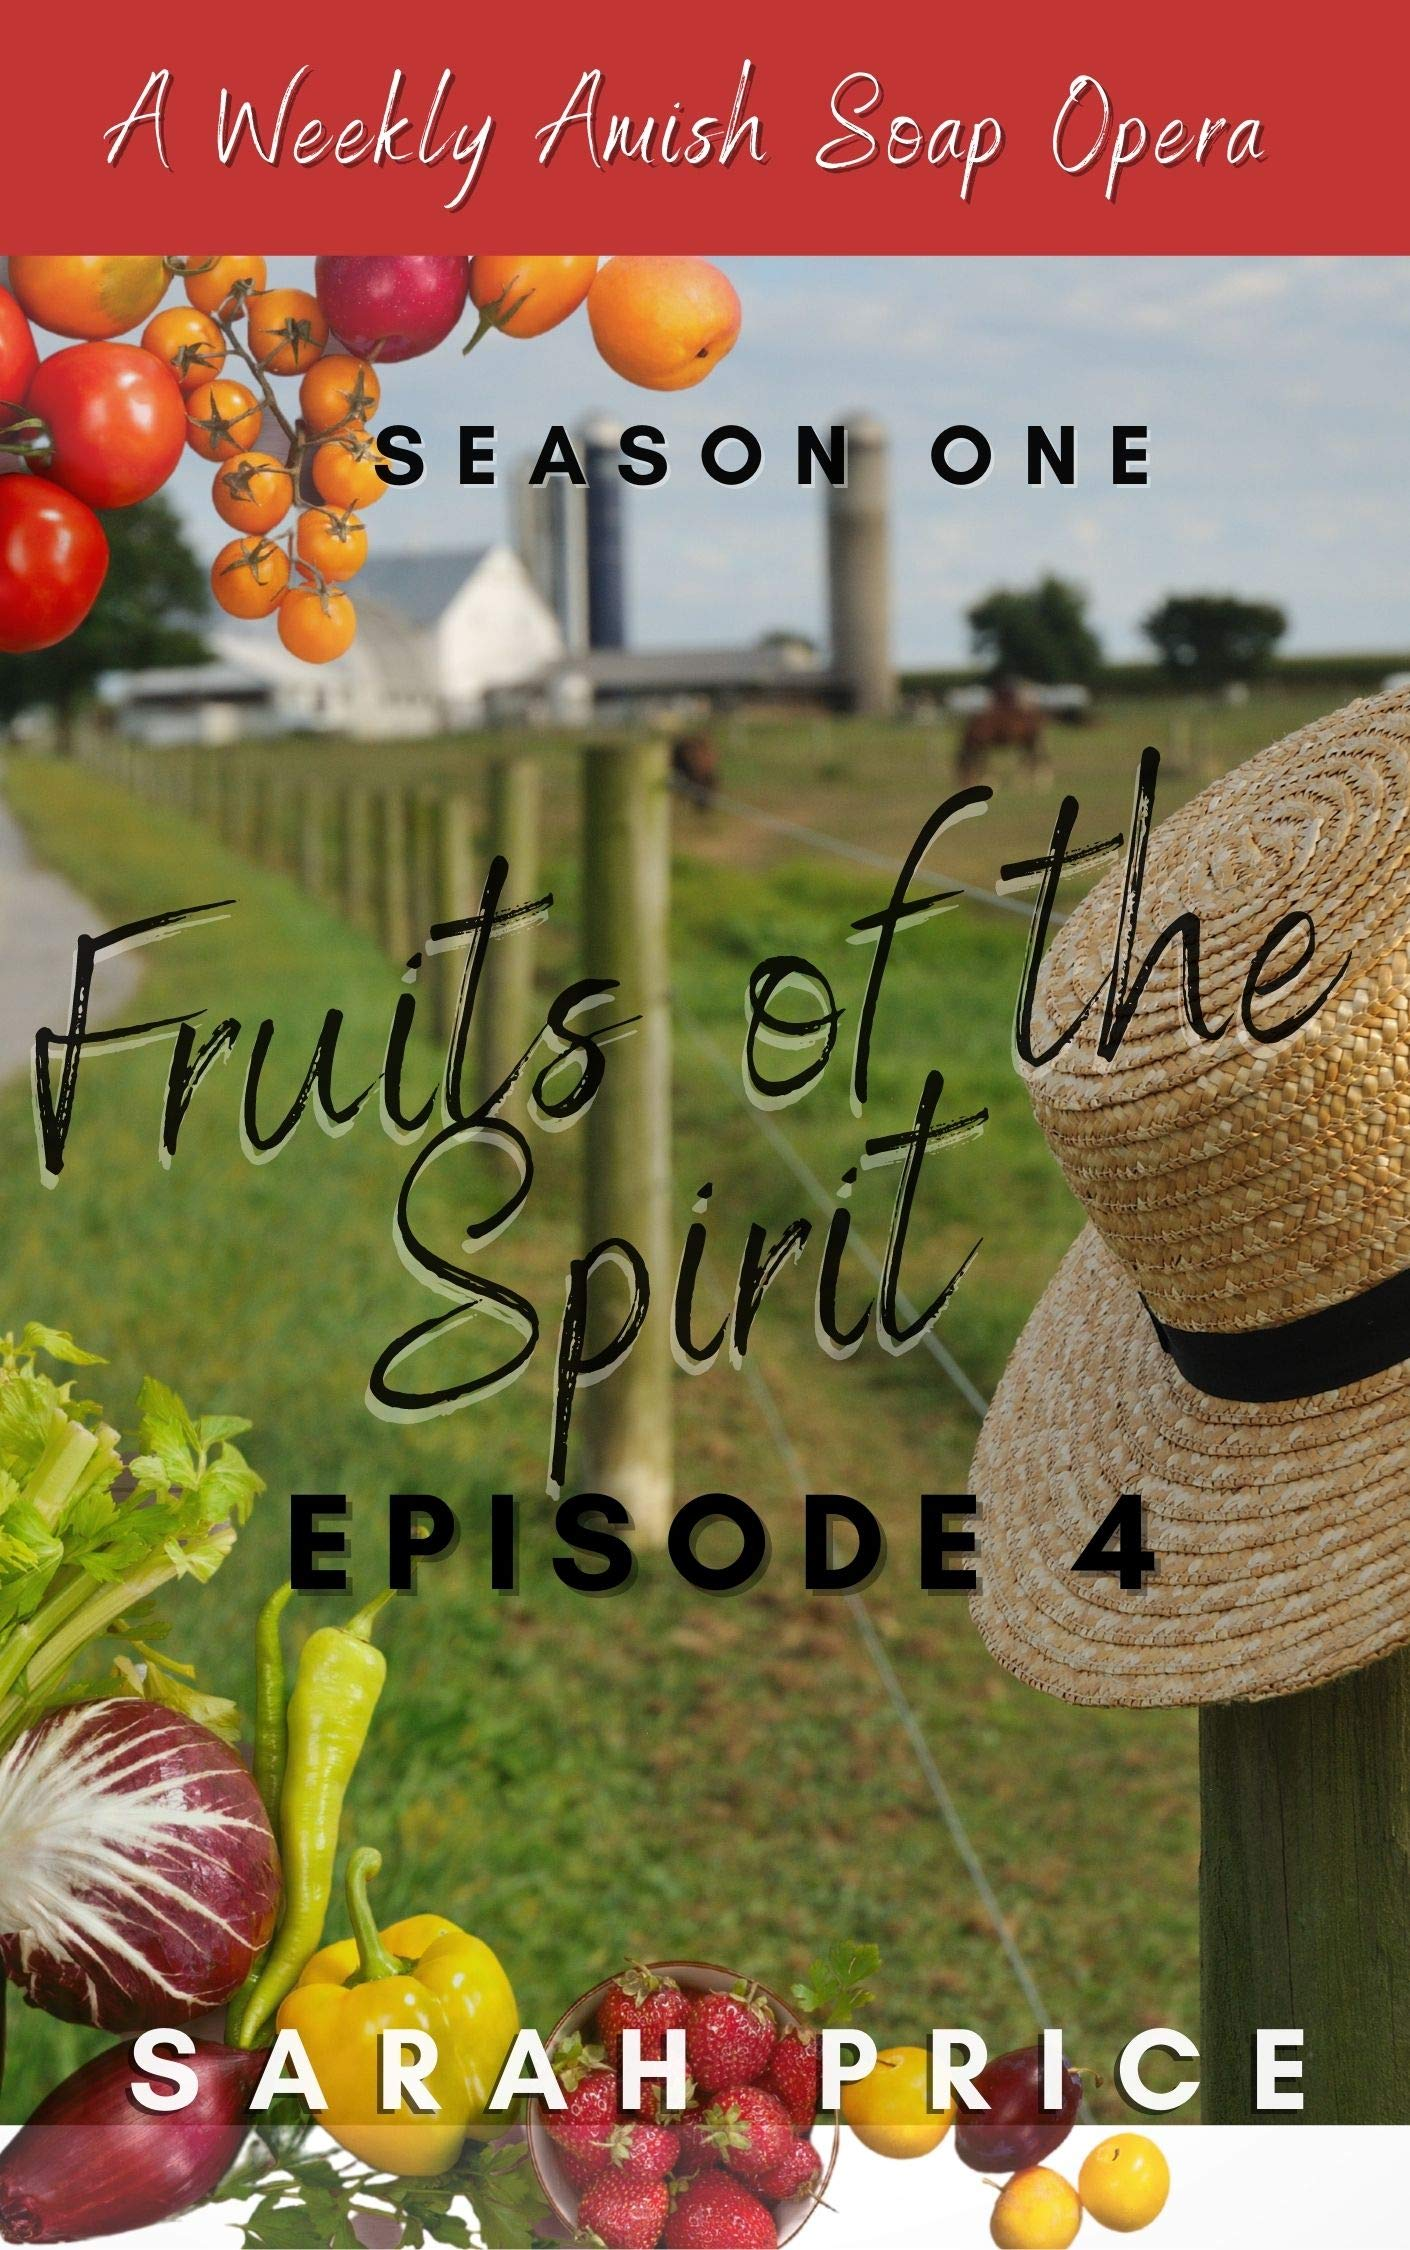 Fruits of the Spirit: An Amish Romance Soap Opera (Fruits of the Spirit (Season One) Book 4)